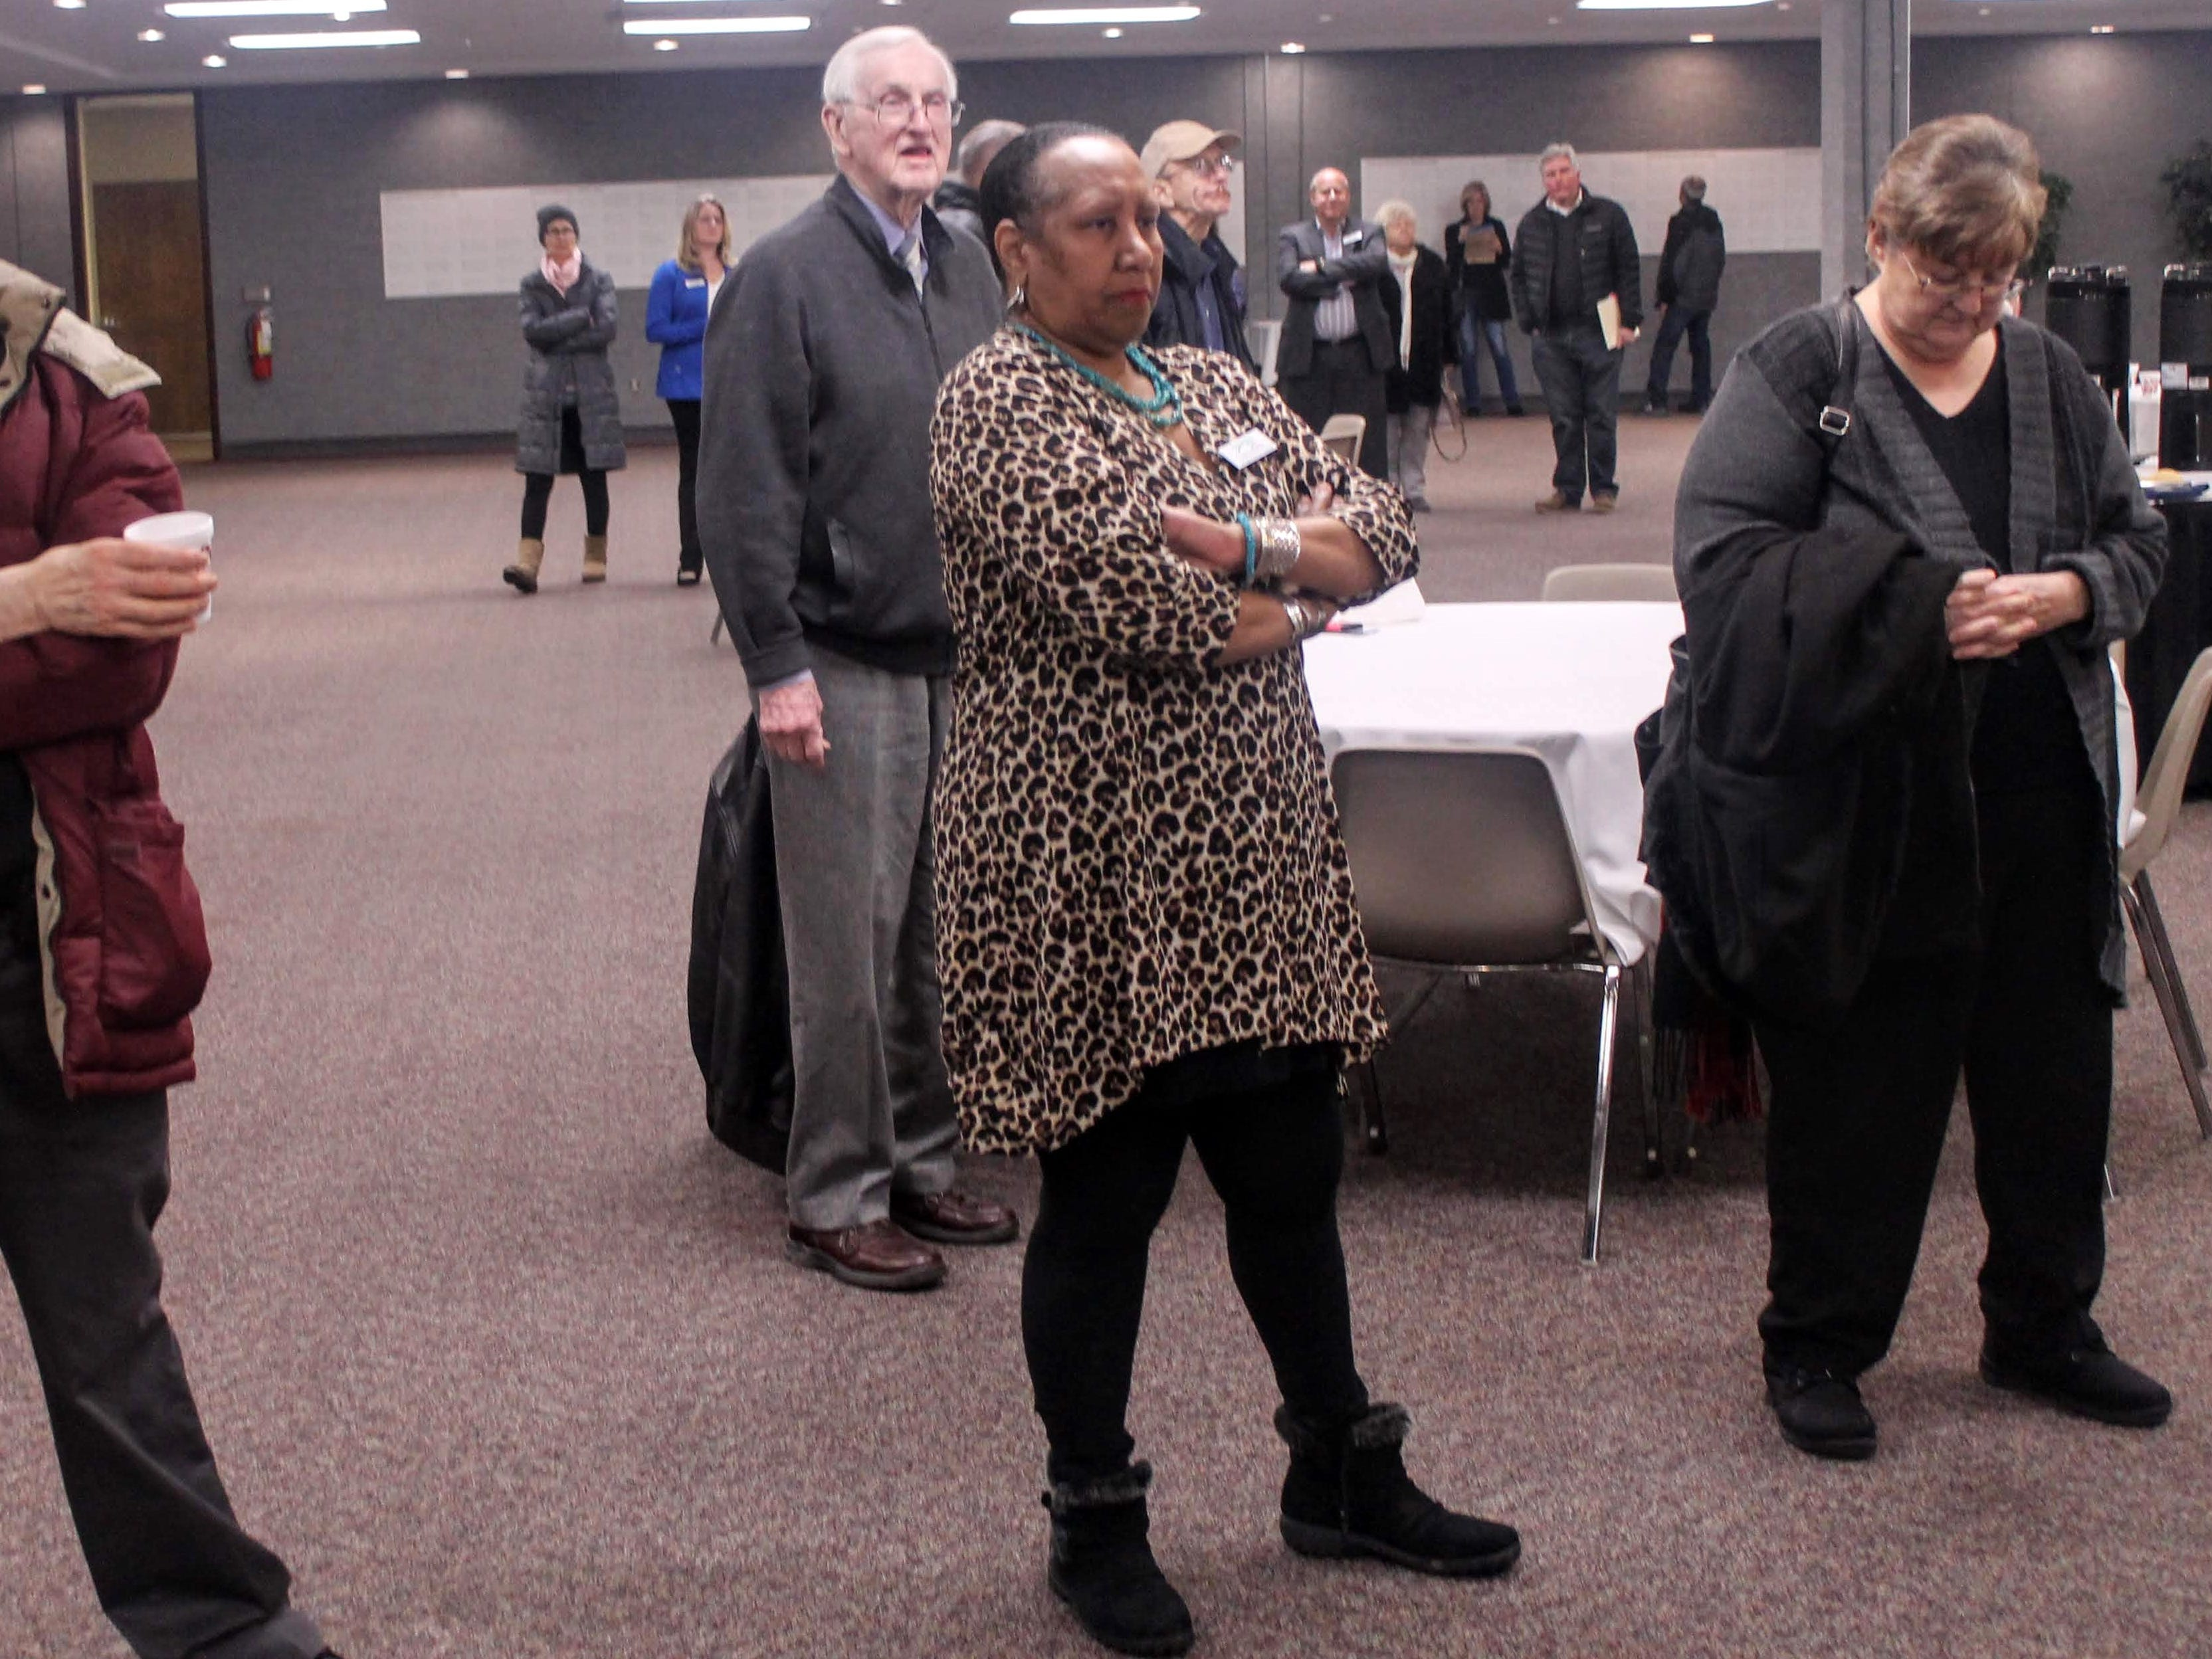 Residents and interested stakeholders listen to a short presentation on the future of Harrison High School Jan. 16 in the Costick Center in Farmington Hills.